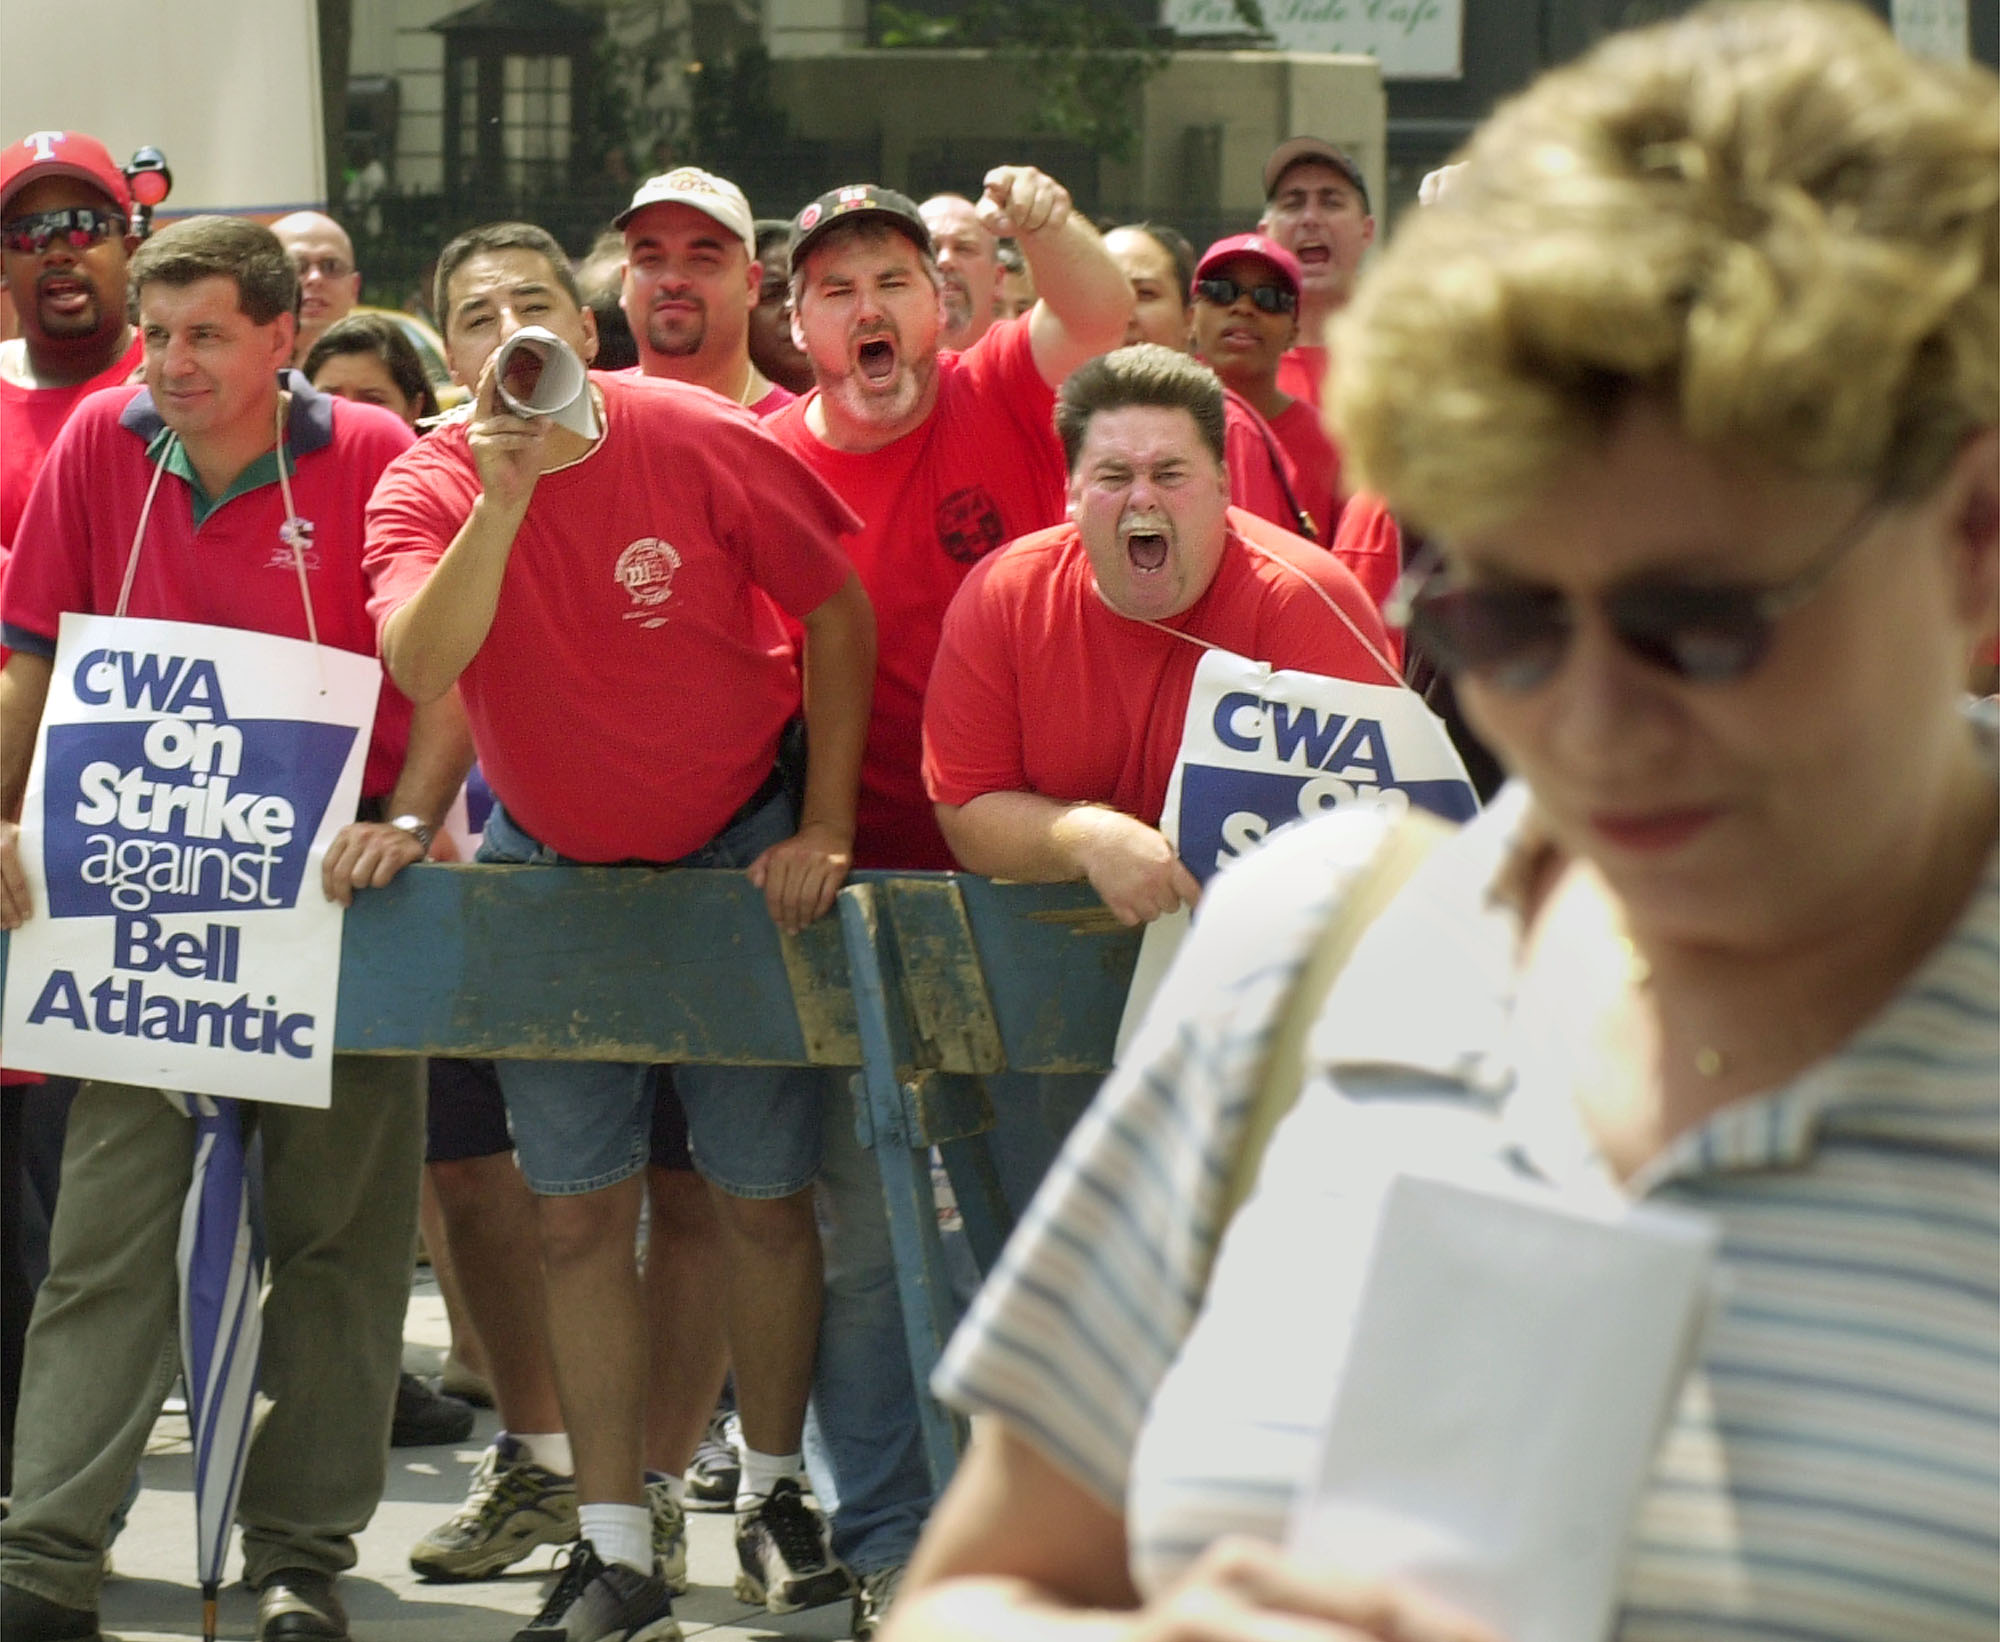 Striking telephone workers represented by the Communications Workers of America verbally harass a woman in front of Verizon Communications'' headquarters in New York Aug. 7, 2000.